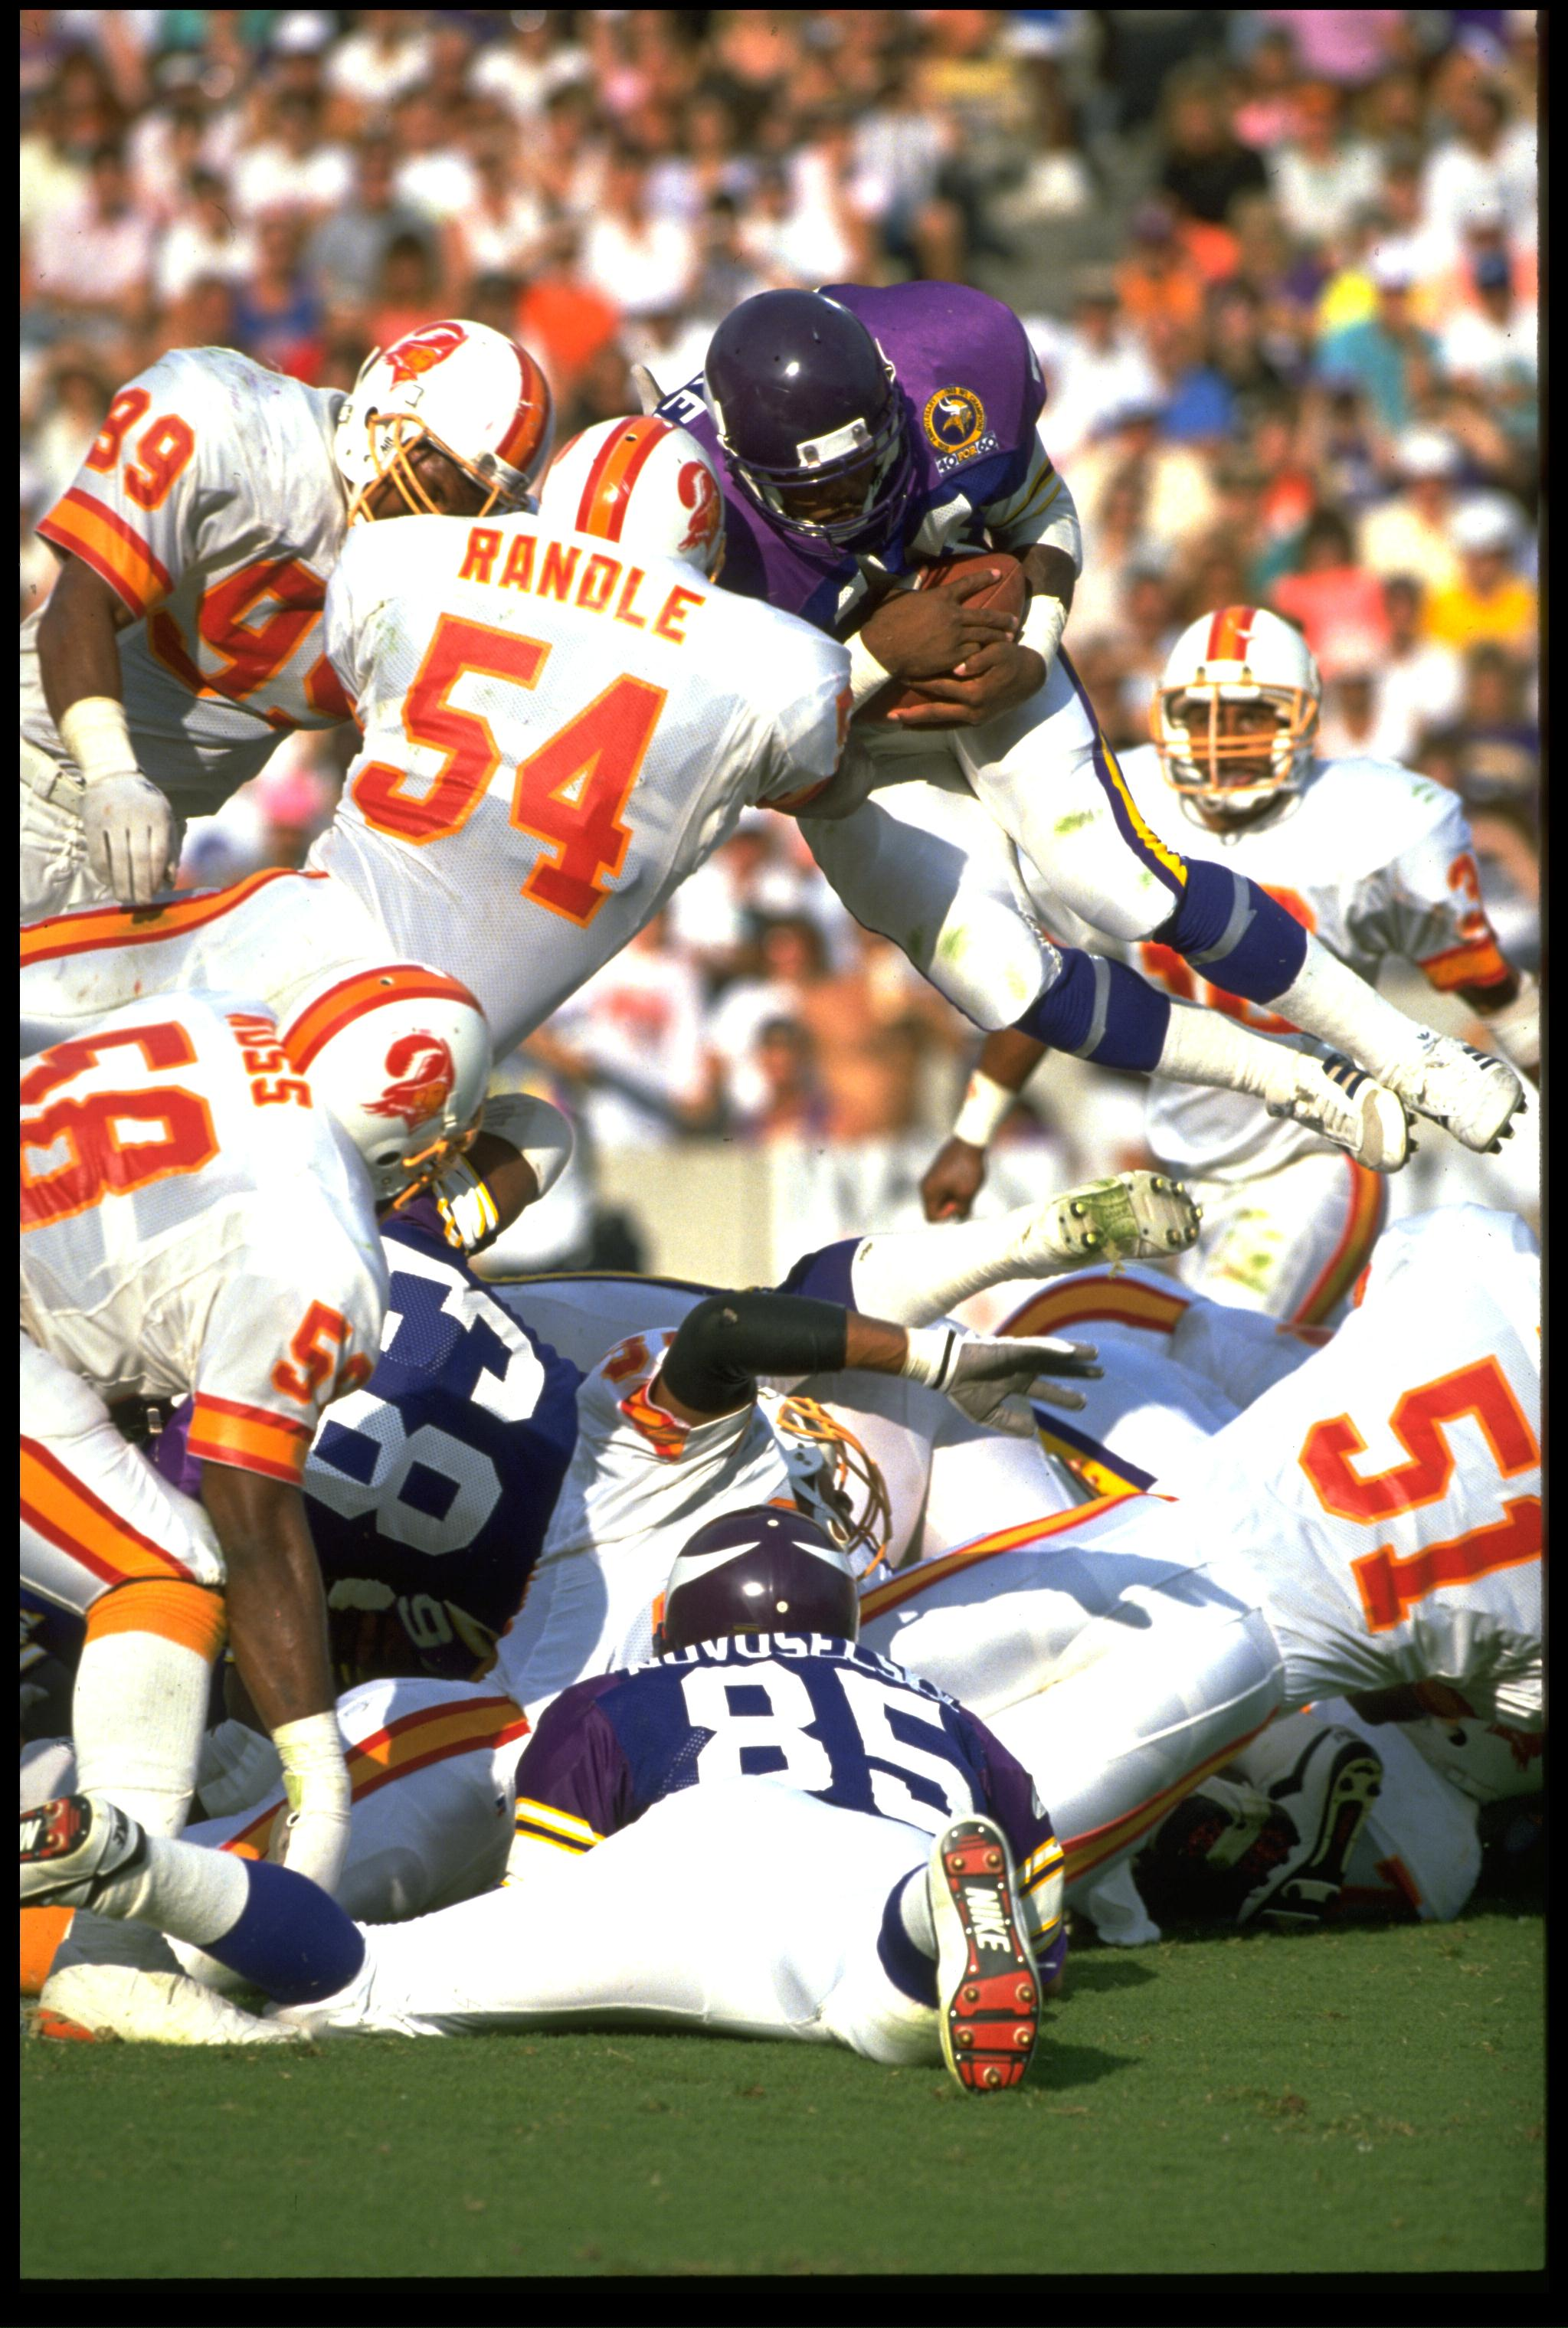 12 NOV 1989:  MINNESOTA VIKINGS RUNNING BACK HERSCHEL WALKER LEAPS FOR THE ENDZONE DURING THE VIKINGS 24-10 WIN OVER THE TAMPA BAY BUCCANEERS AT TAMPA STADIUM IN TAMPA BAY, FLORIDA.  MANDATORY CREDIT:  SCOTT HALLERAN /ALLSPORT